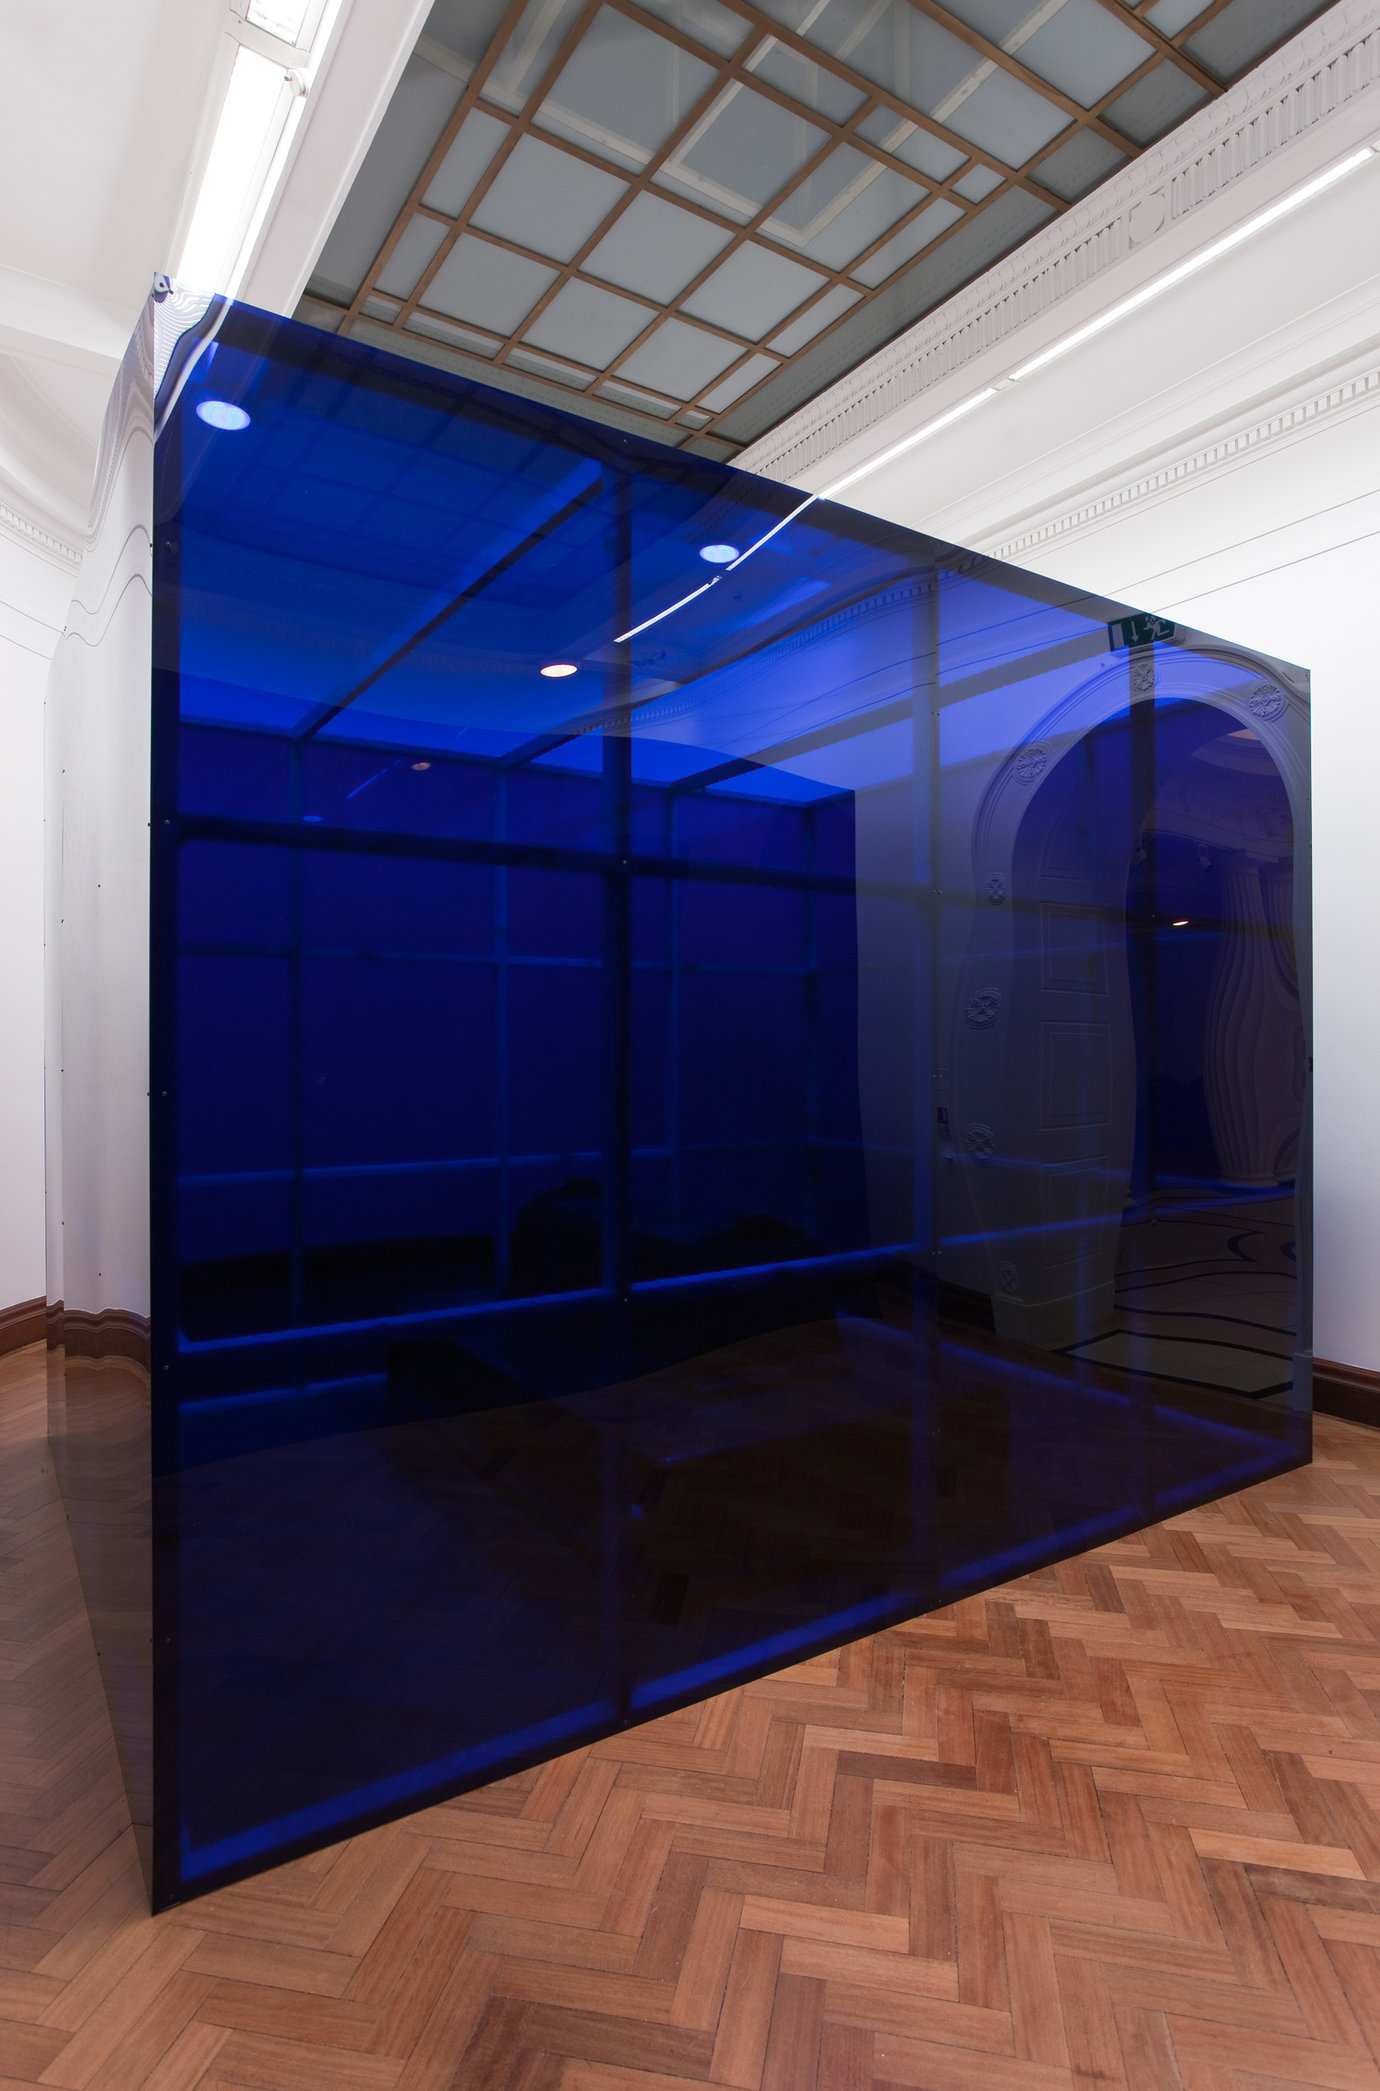 ", 2009. Blue plexiglas, timber, site-specific installation&#x000A;10&apos; 1/16"" x 9&apos; 11-7/8"" x 13&apos; 3-13/16"" (305 cm x 304.5 cm x 406 cm), 2 structures, each."